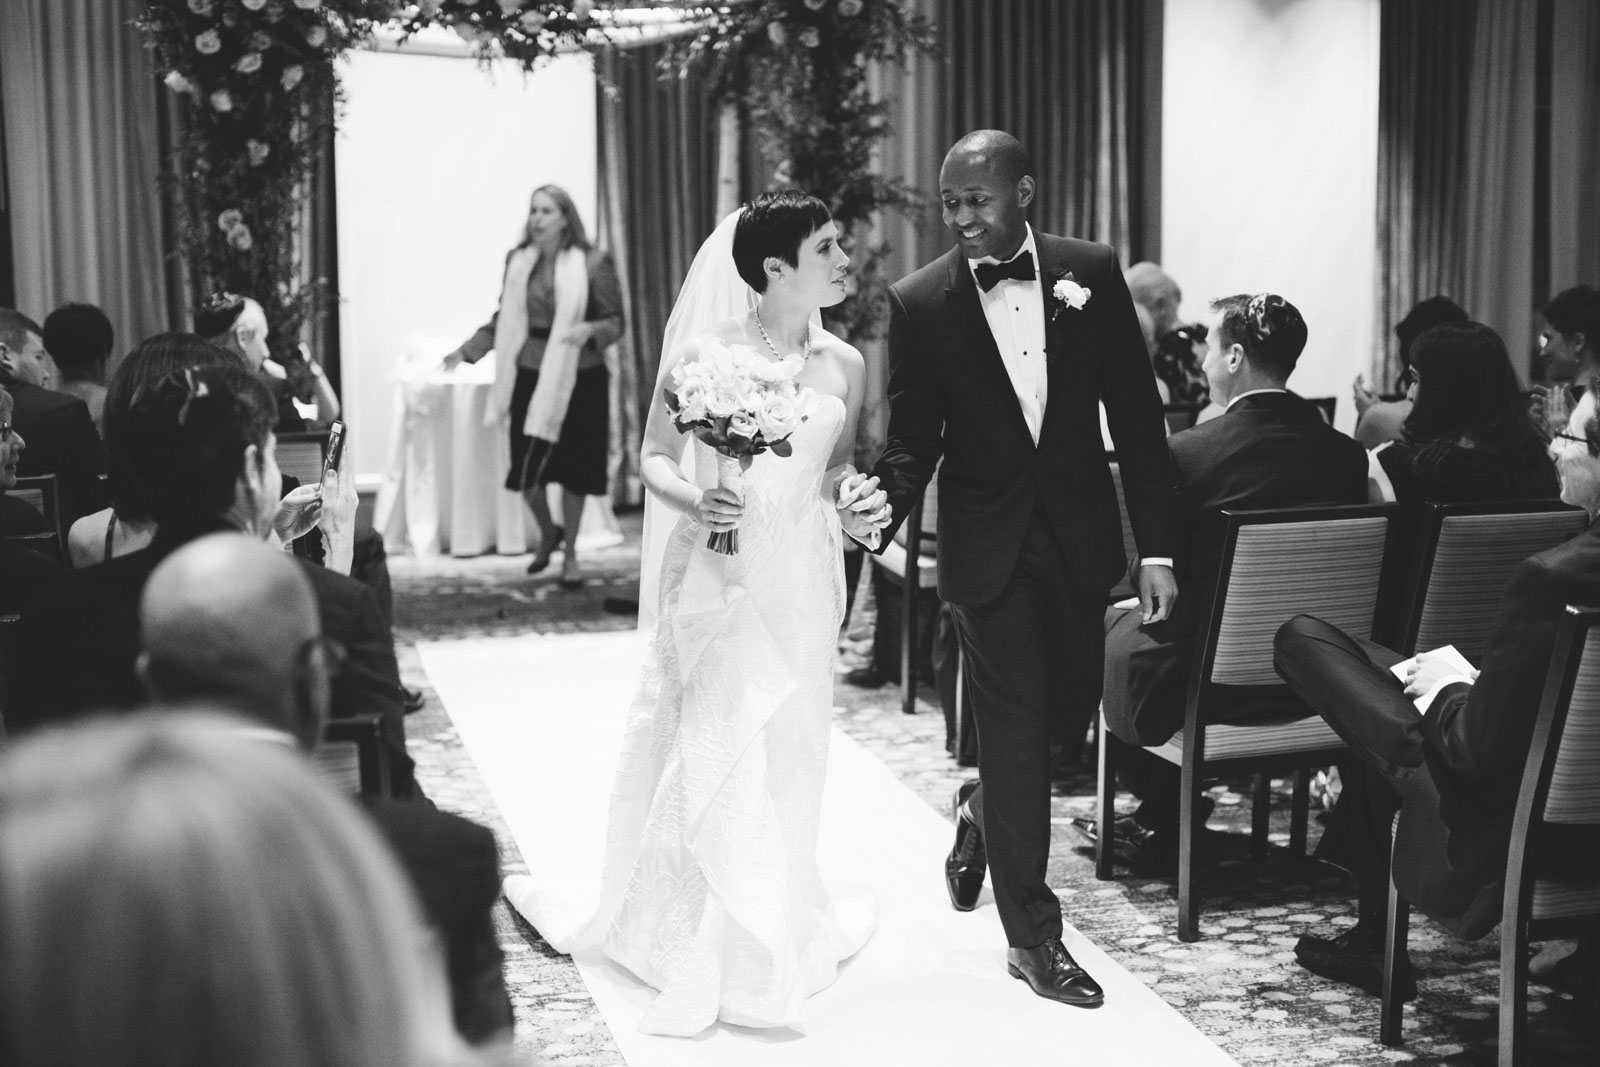 bride and groom walking back down the aisle together after their interracial wedding ceremony